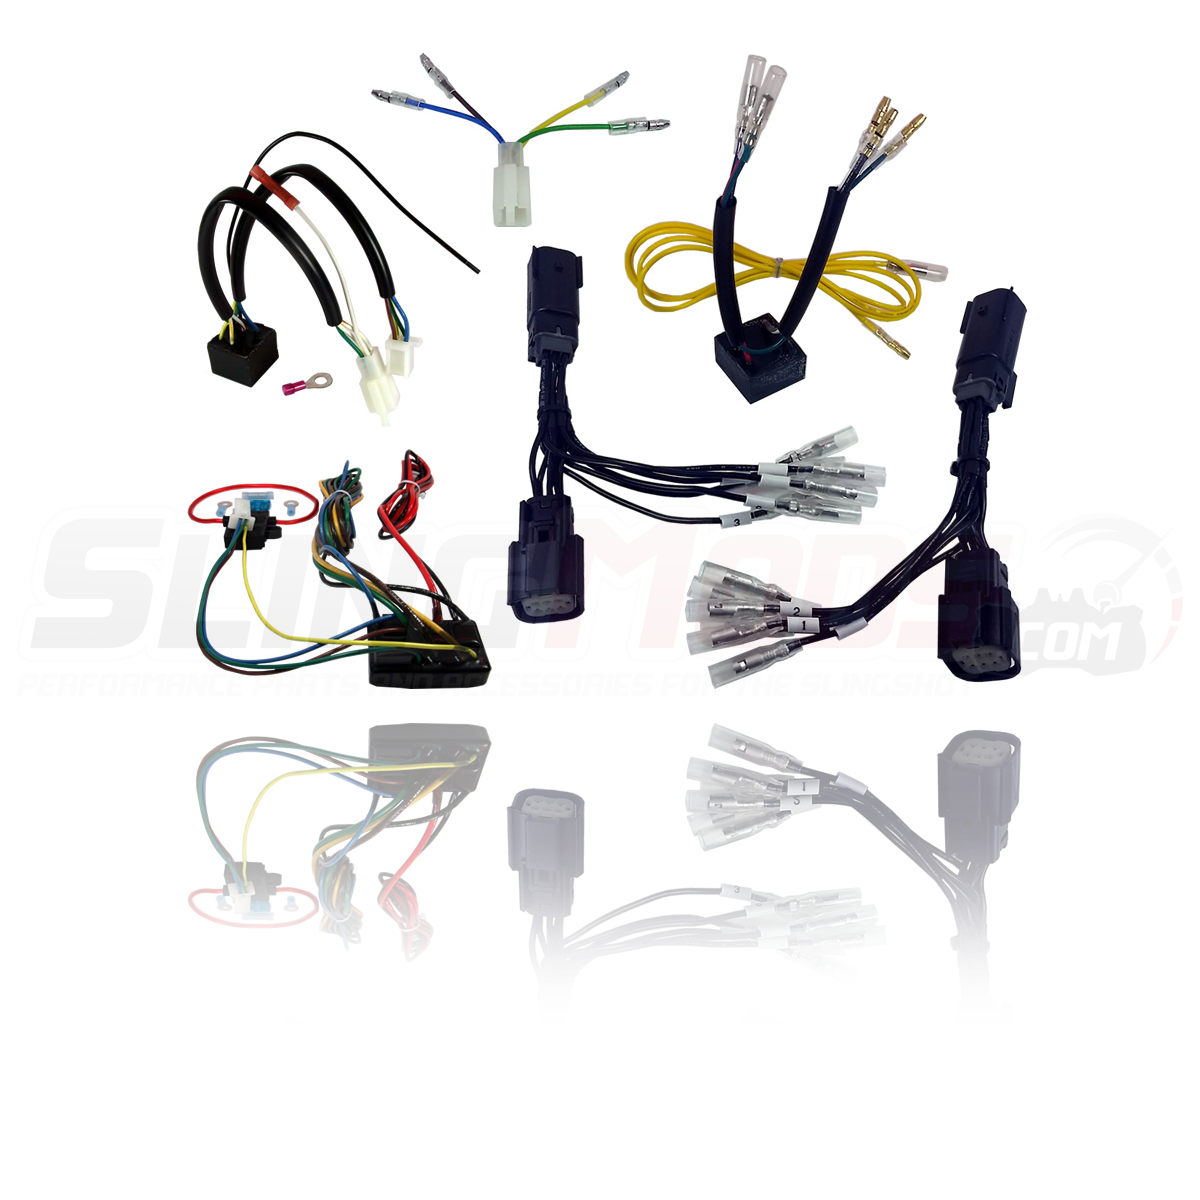 polaris slingshot trailer harness polaris slingshot trailer wiring harness trailer harness wiring at mifinder.co